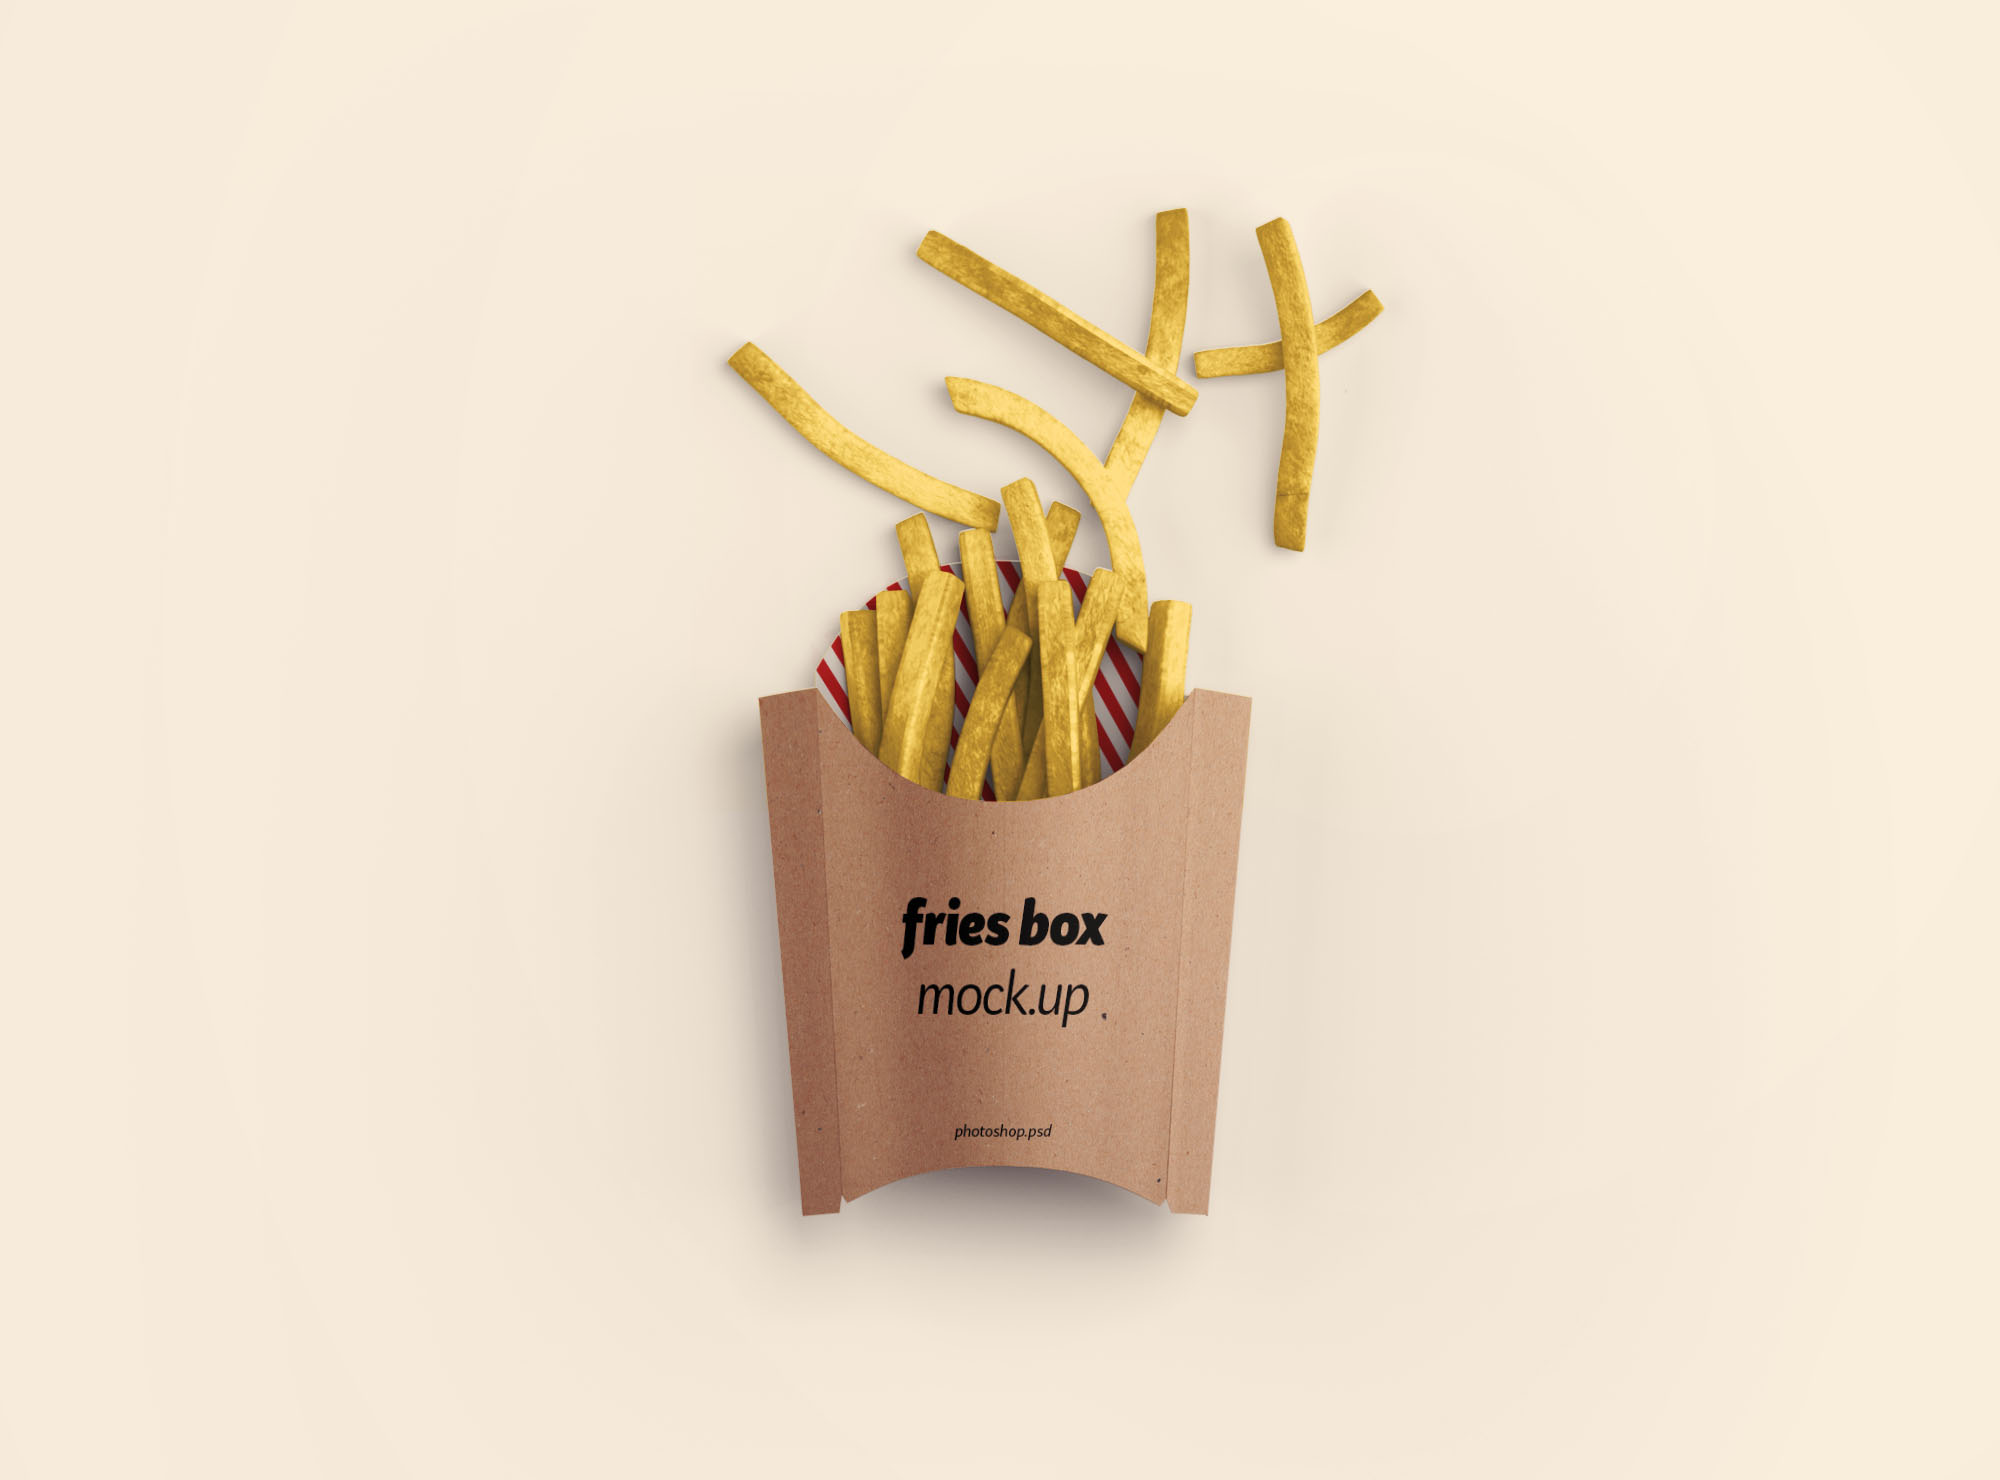 Fries Box Mockup